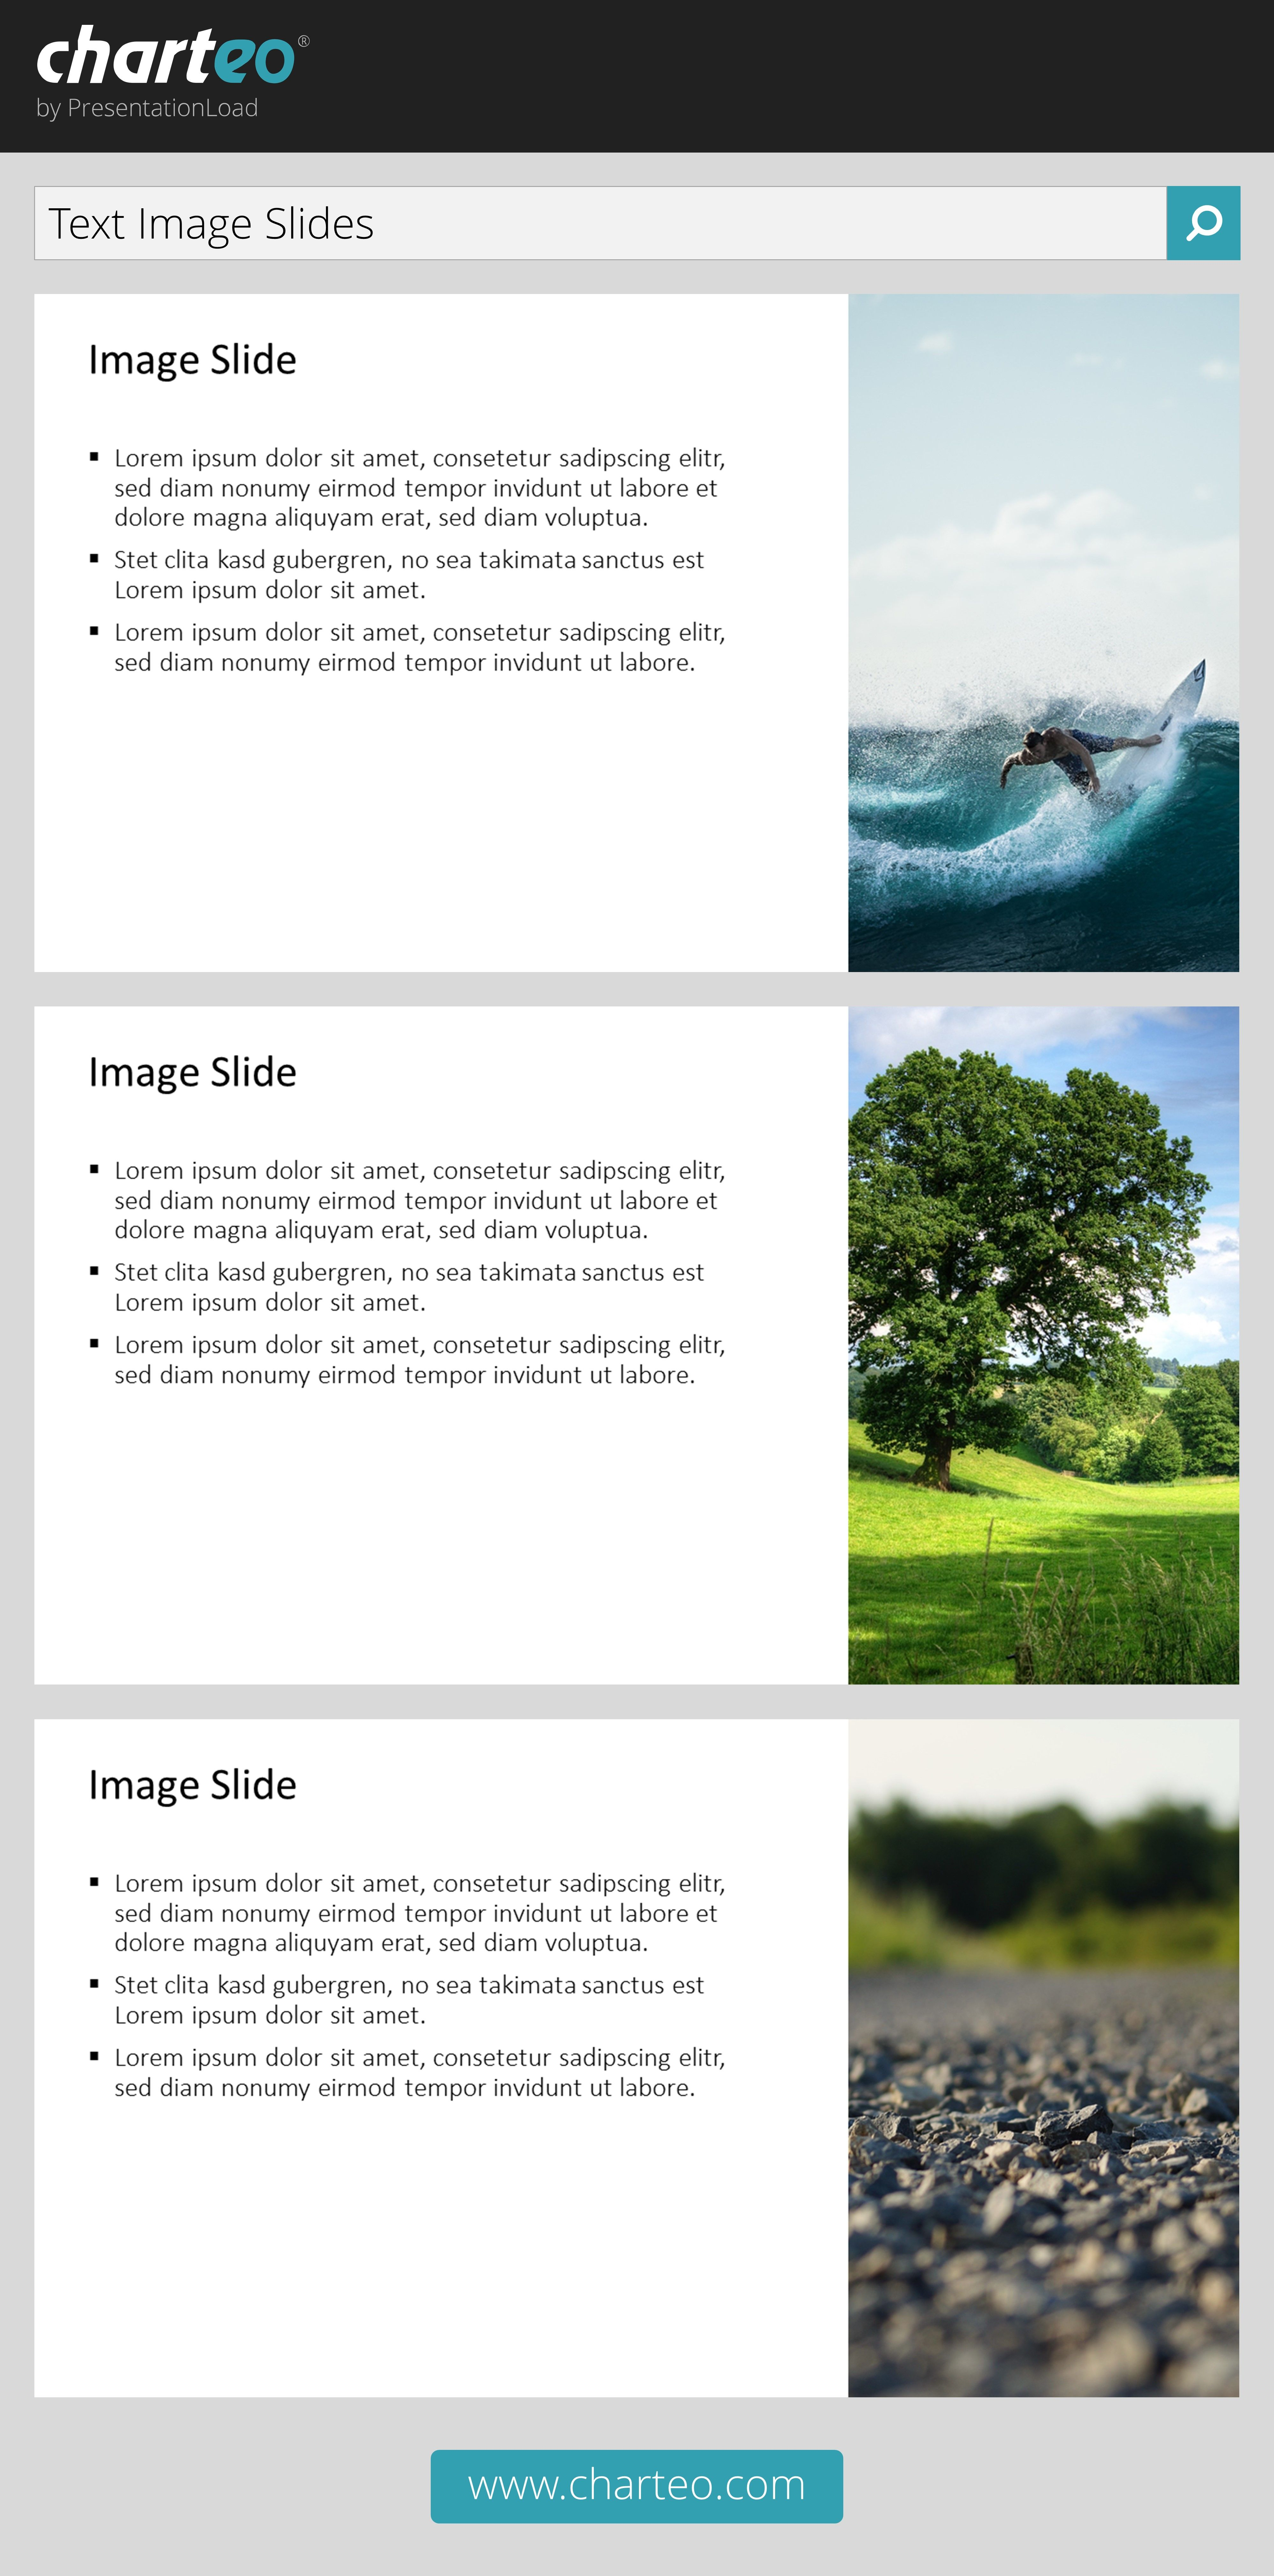 Give your PowerPoint presentation a vivid and modern